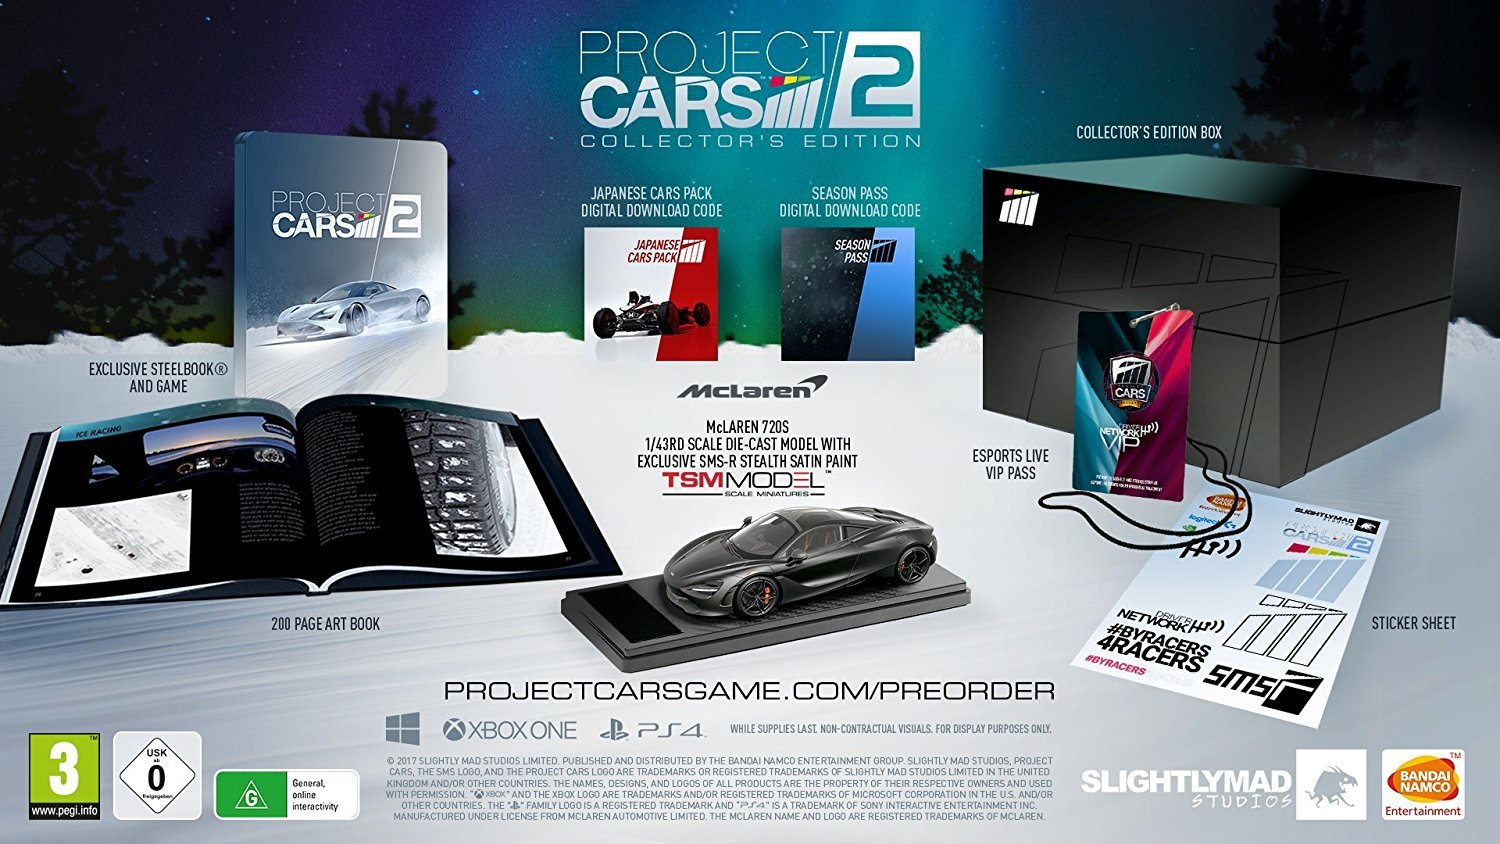 Project cars 2 collector's edition eb games australia.